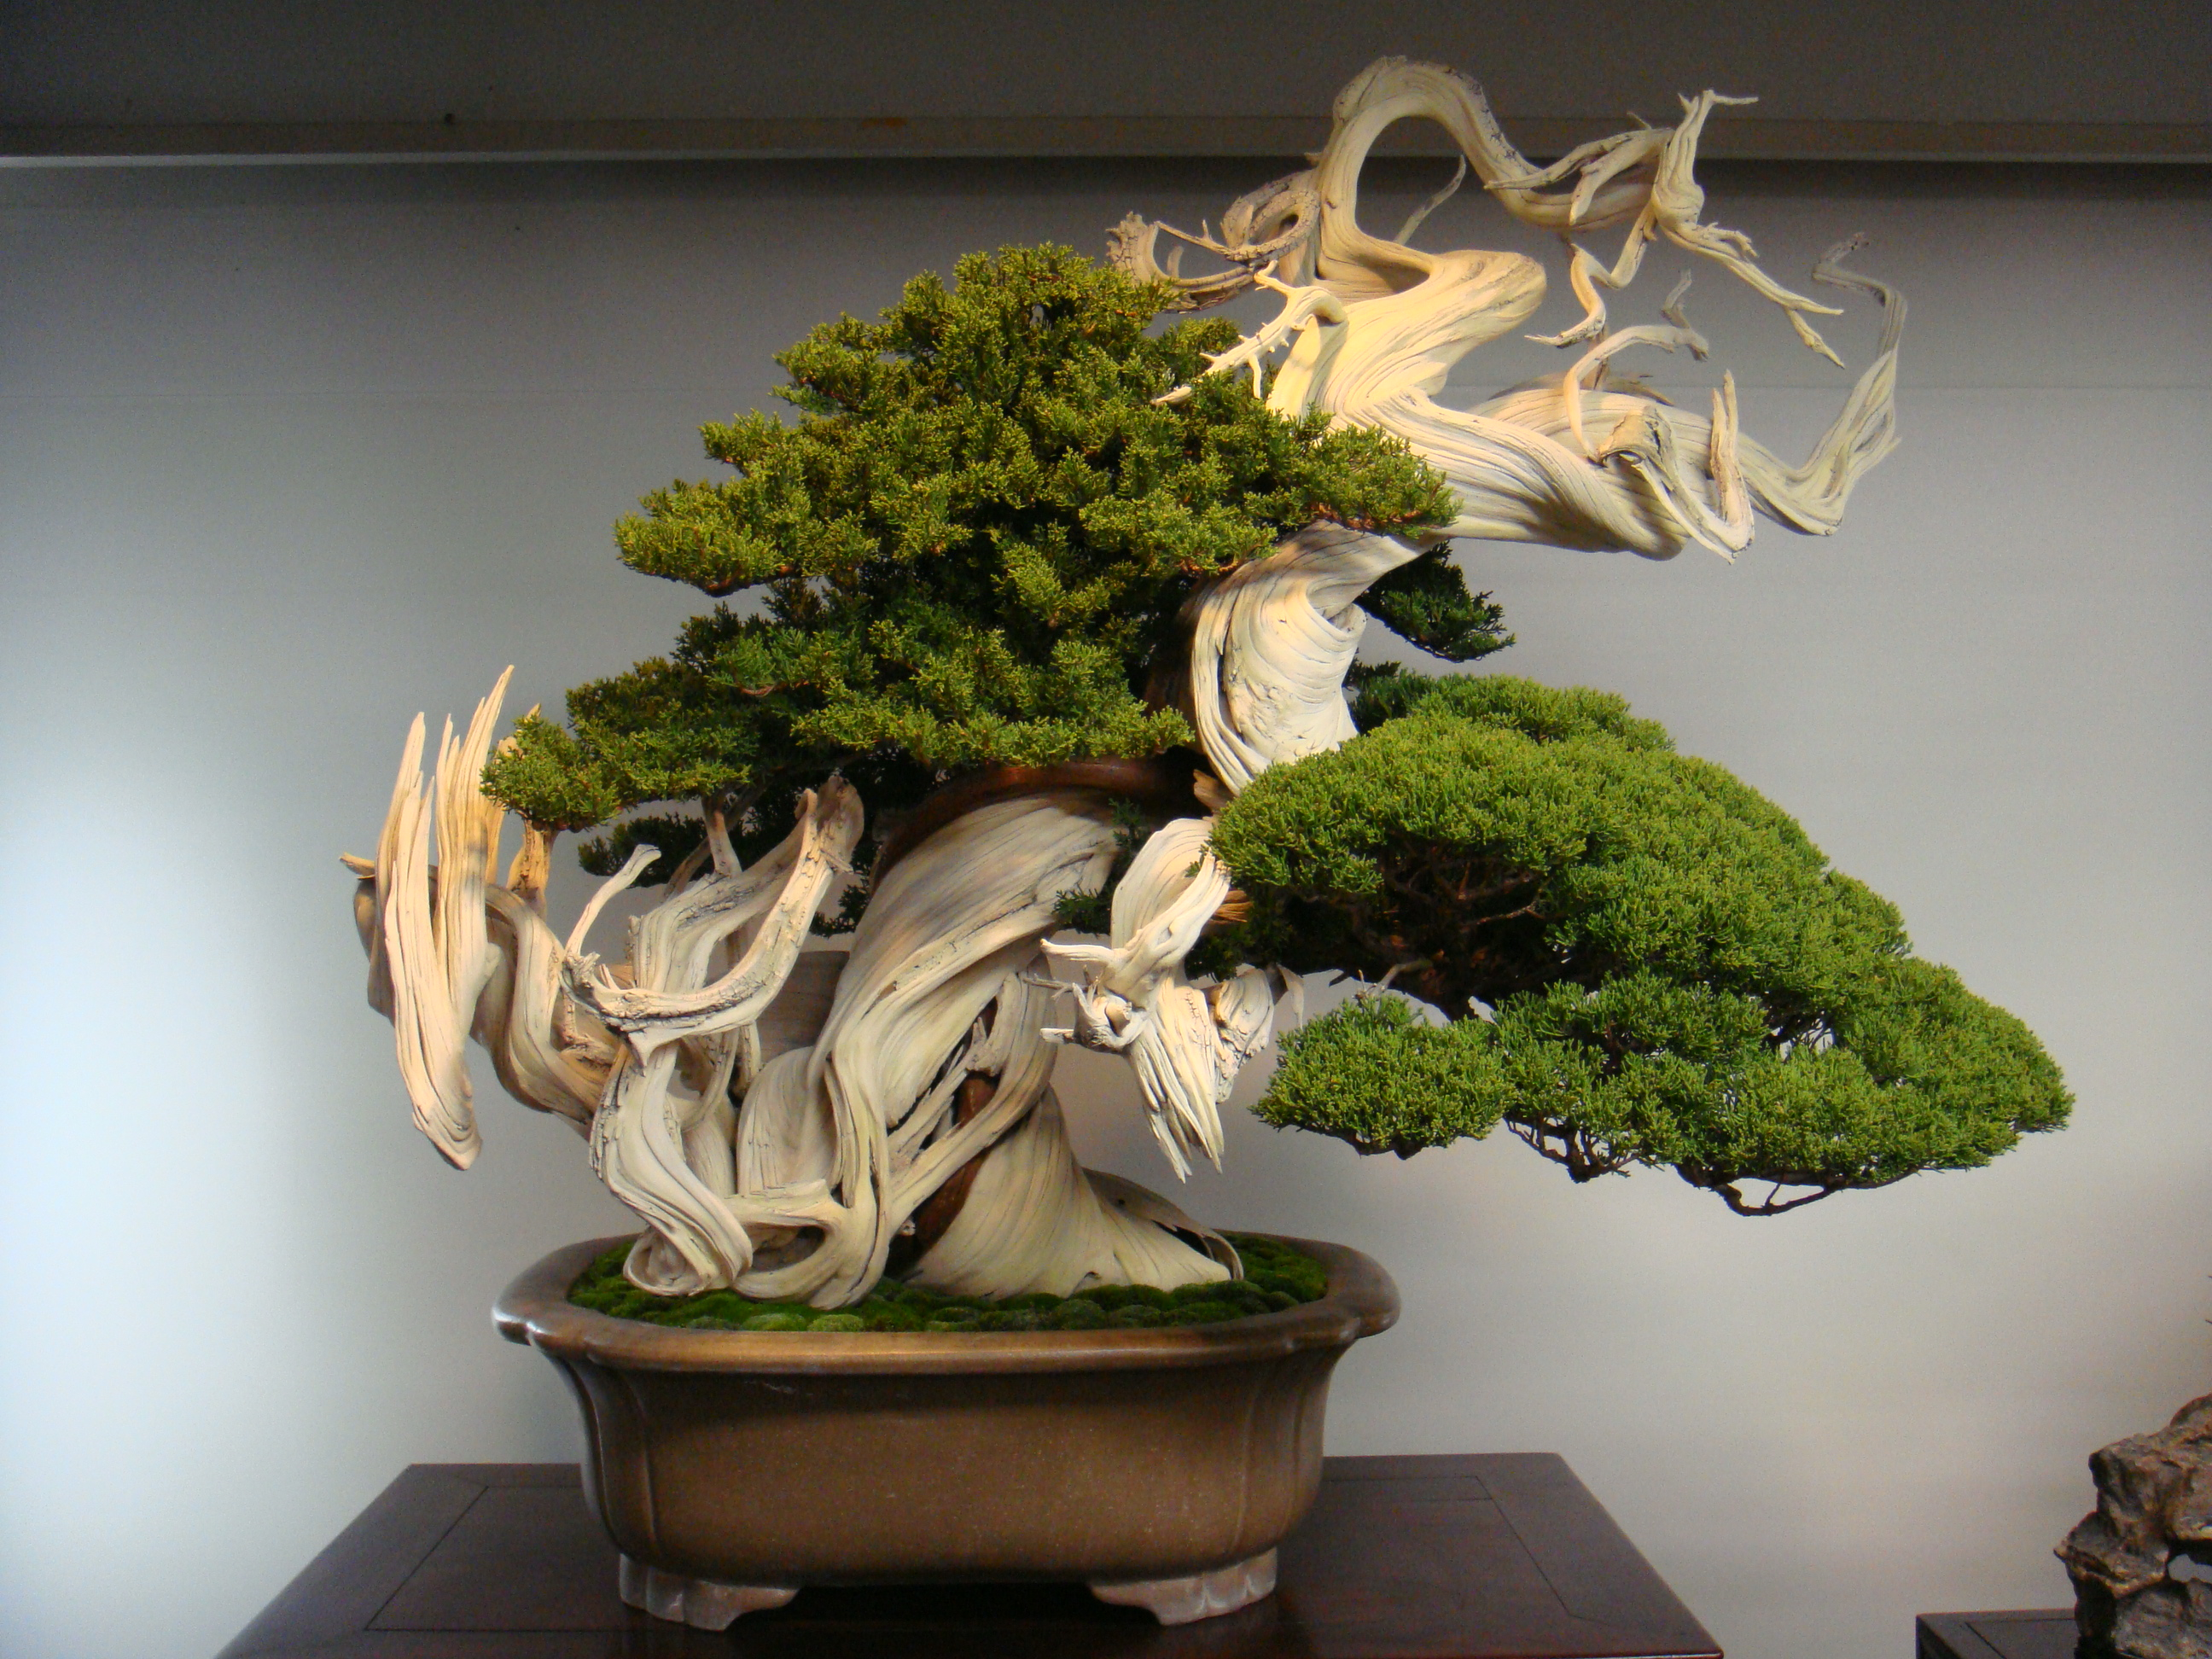 The Most Beautiful And Unique Bonsai Trees In The World-homesthetics (27)